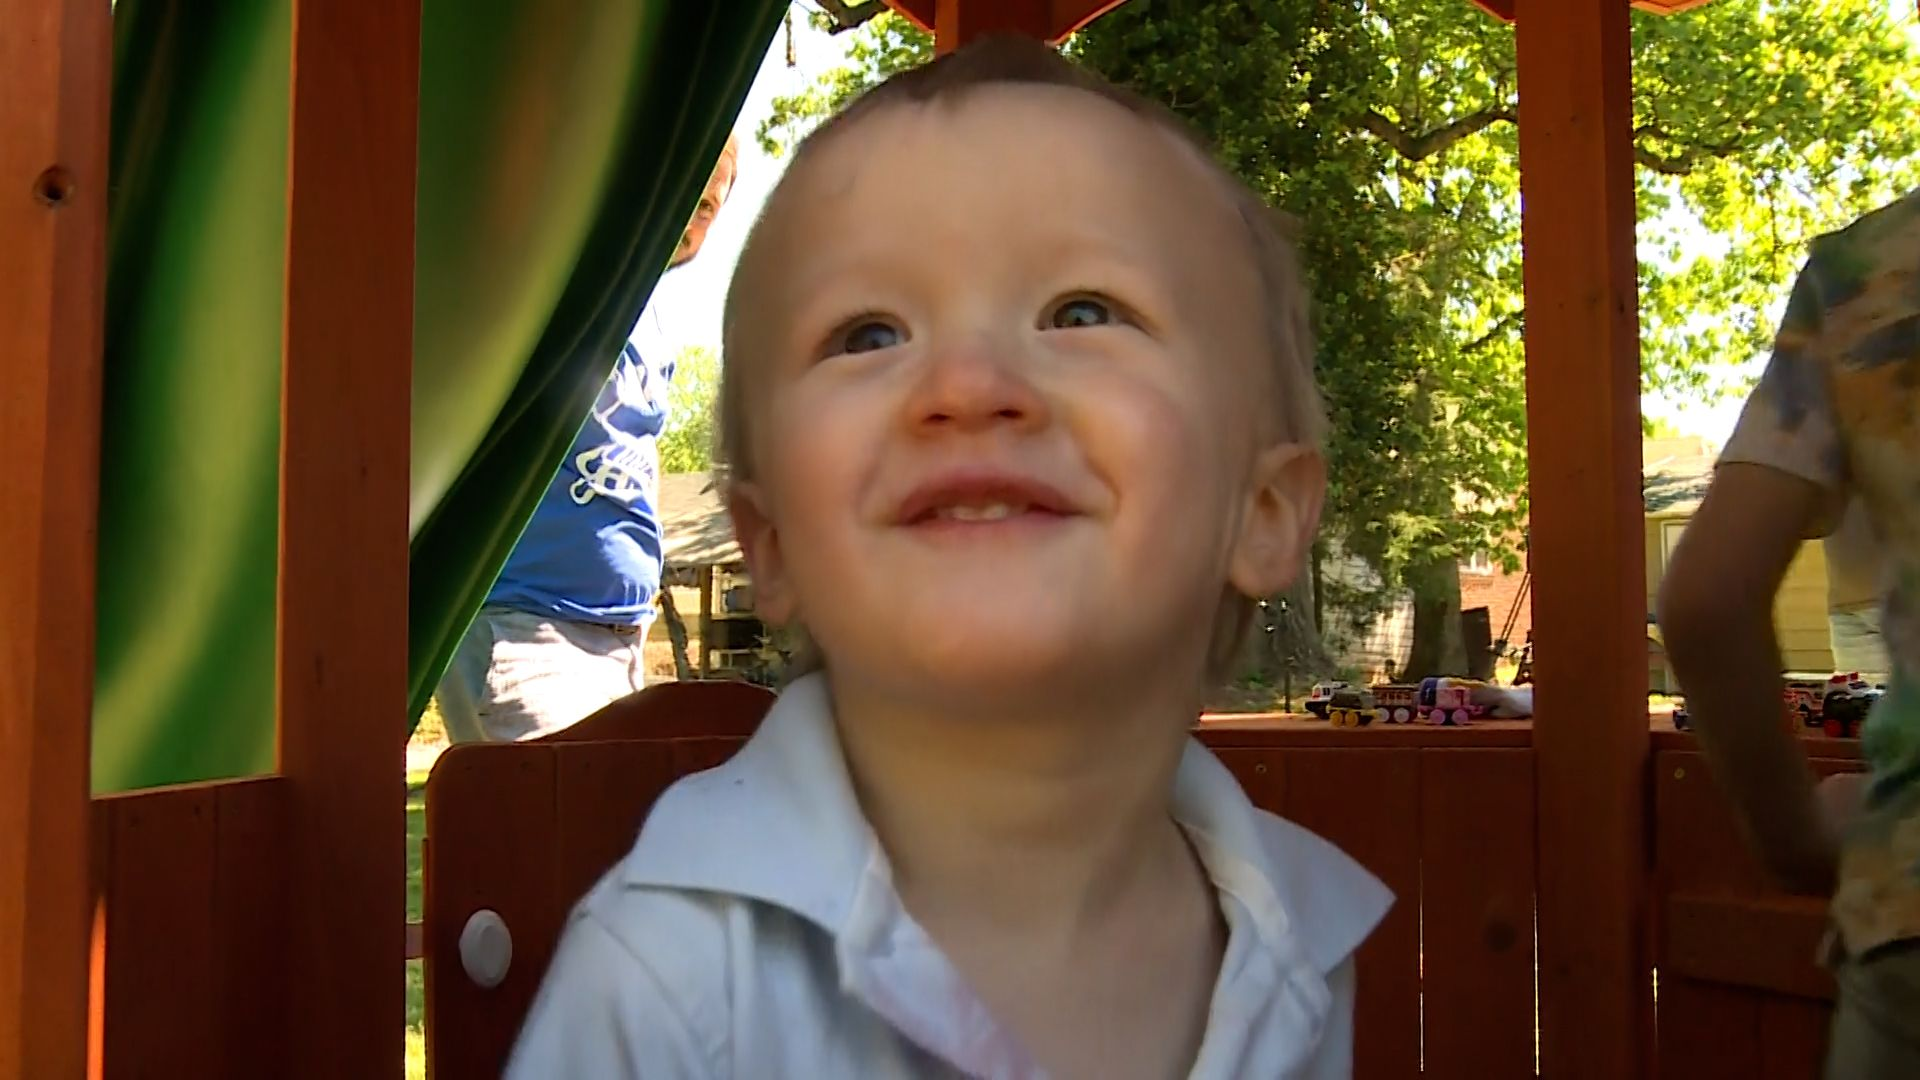 Toddler with kidney cancer surprised by spectacular new playset